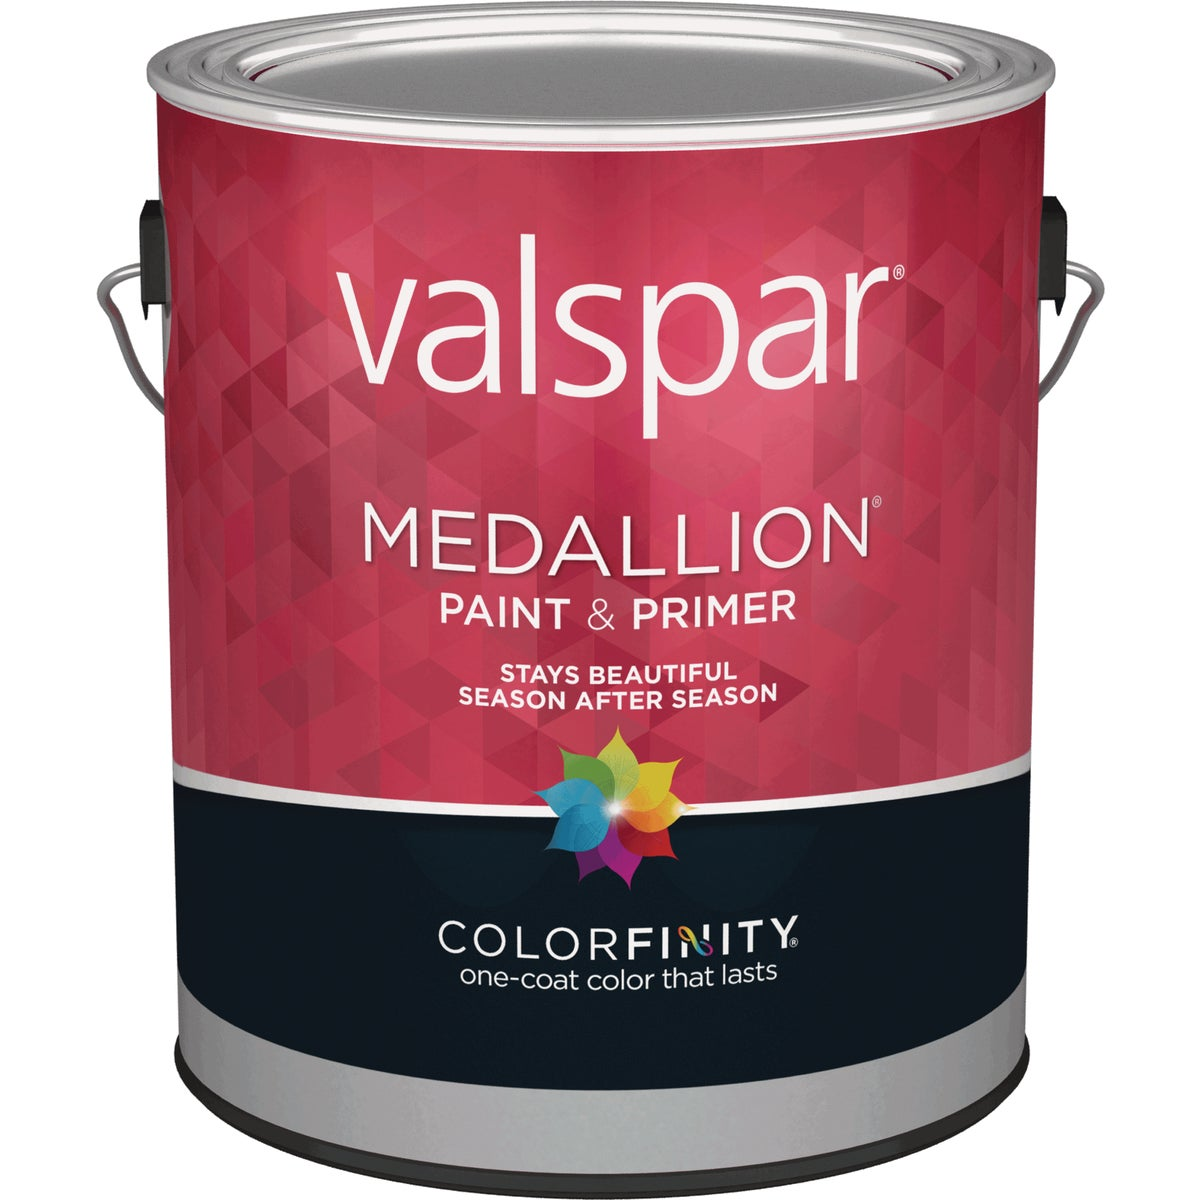 EXT FLAT WHITE PAINT - 027.0045501.007 by Valspar Corp